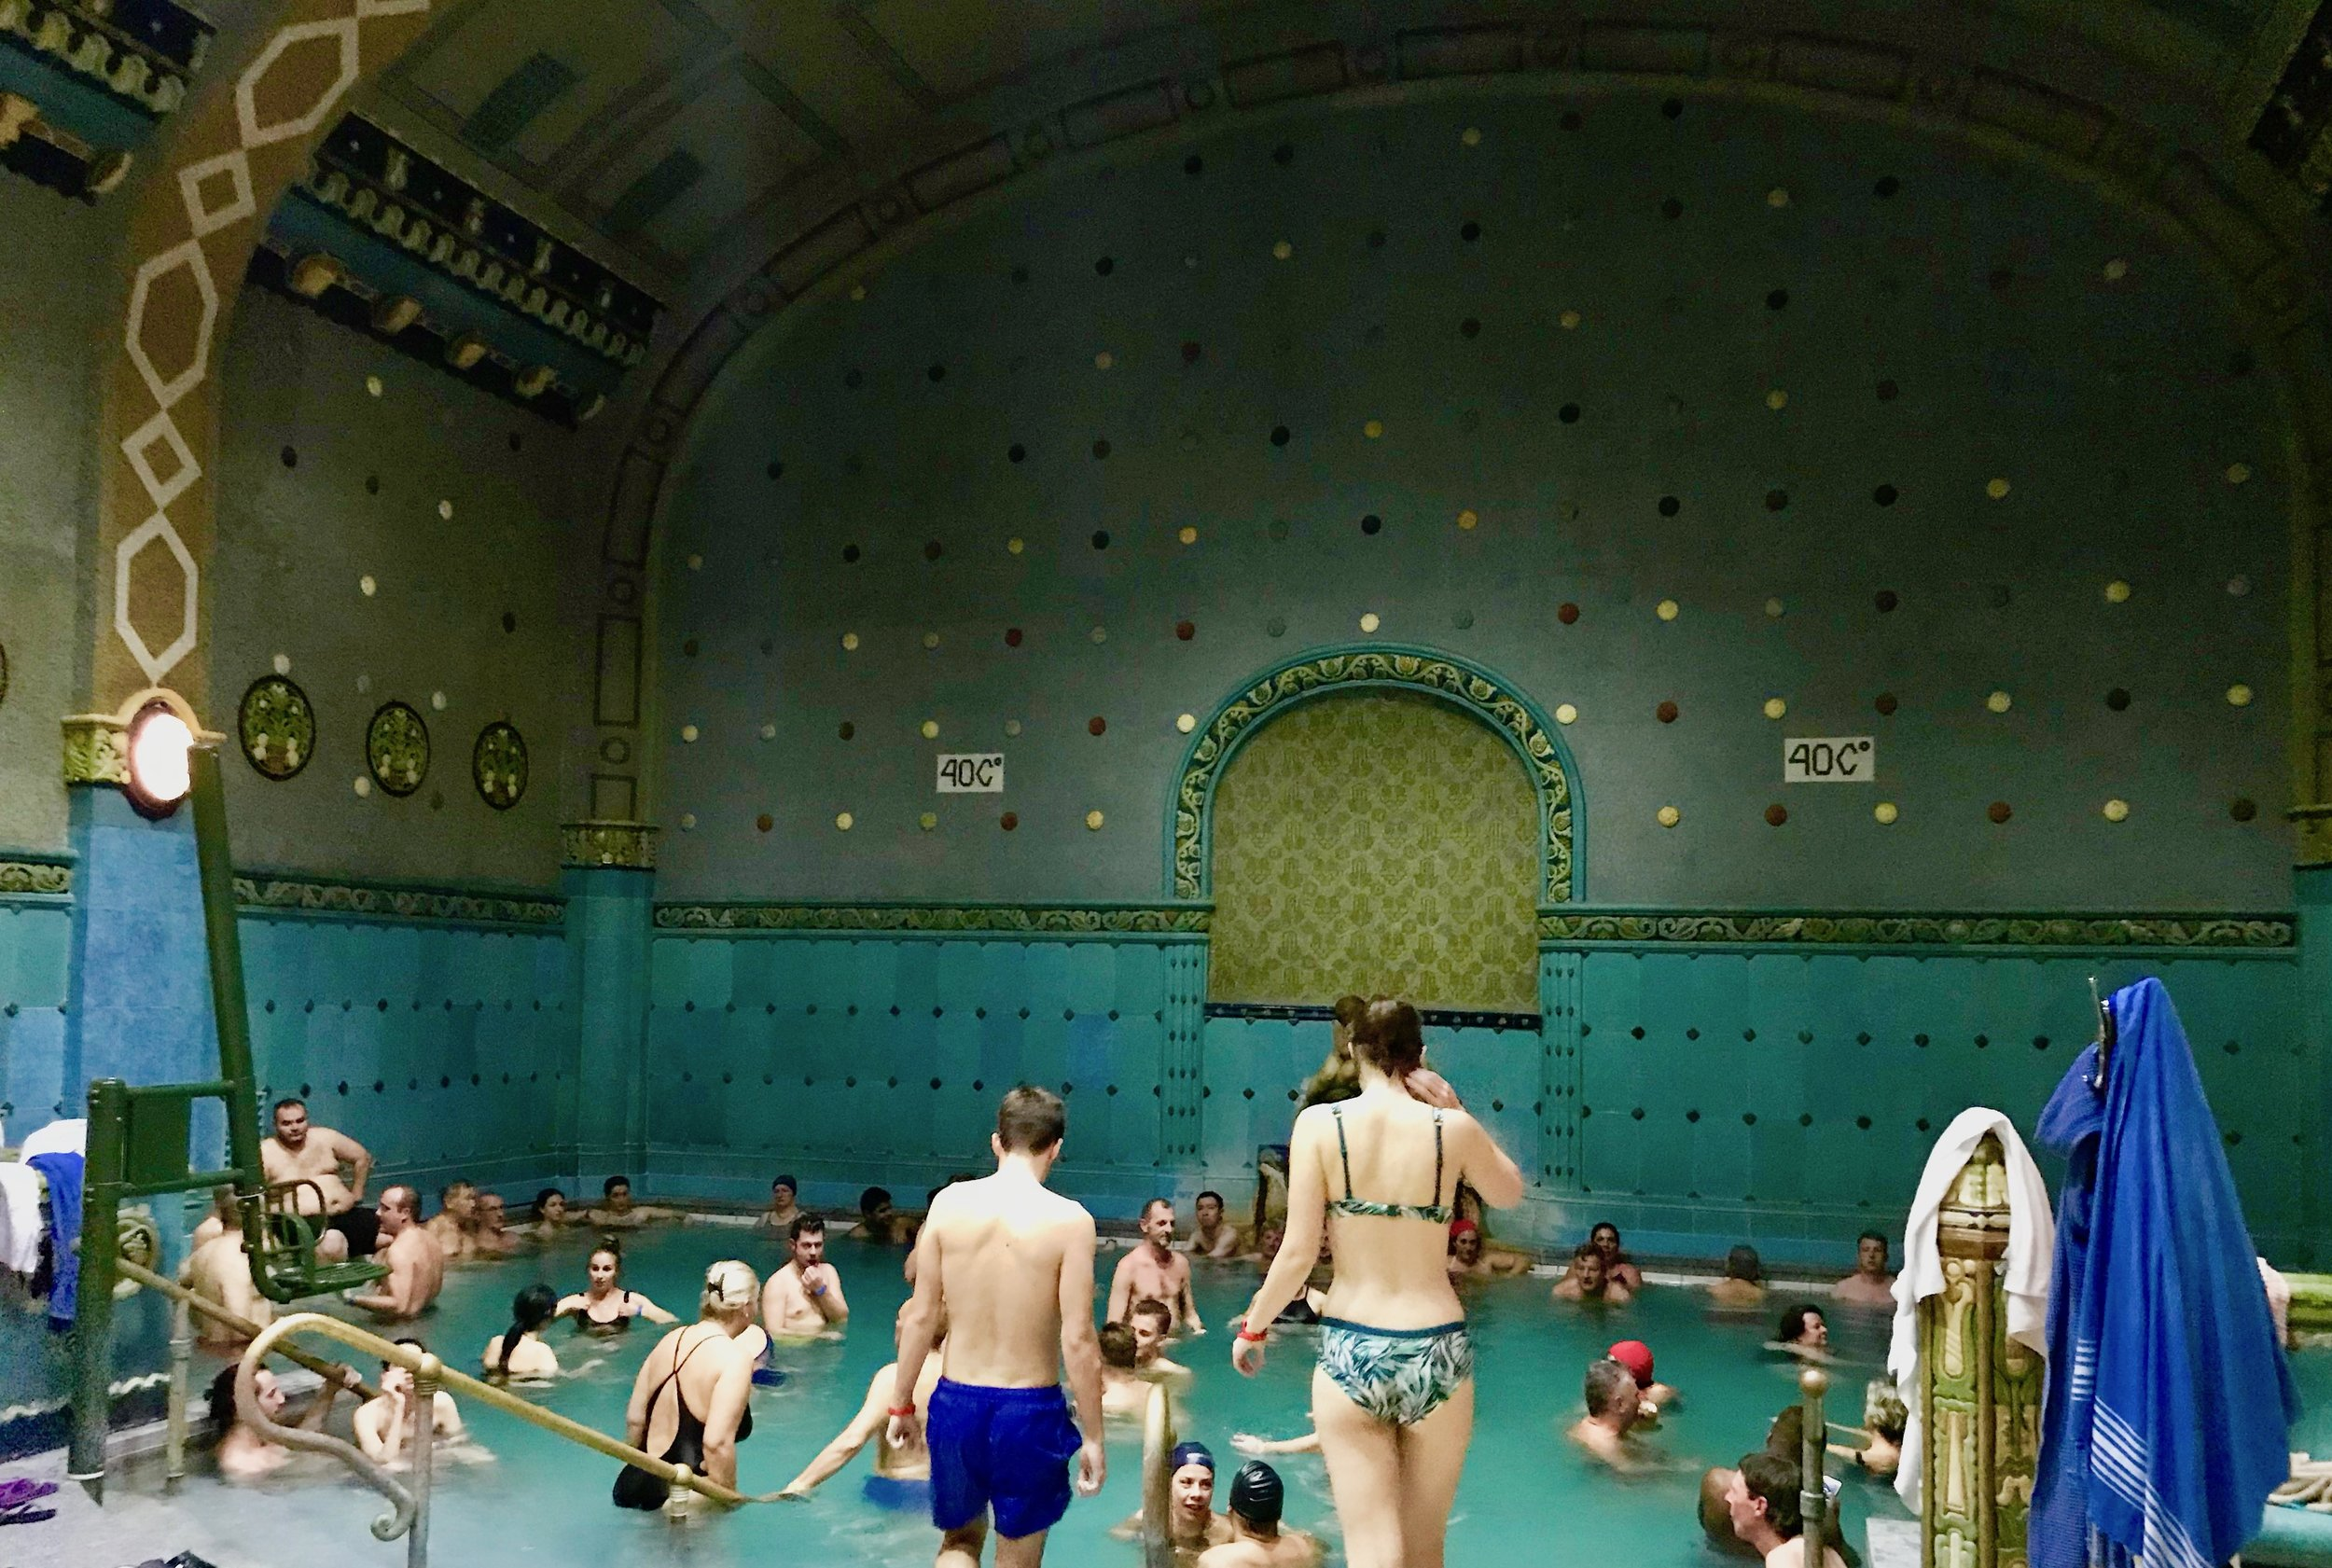 One of the four indoor thermal pools at the Gellert spa